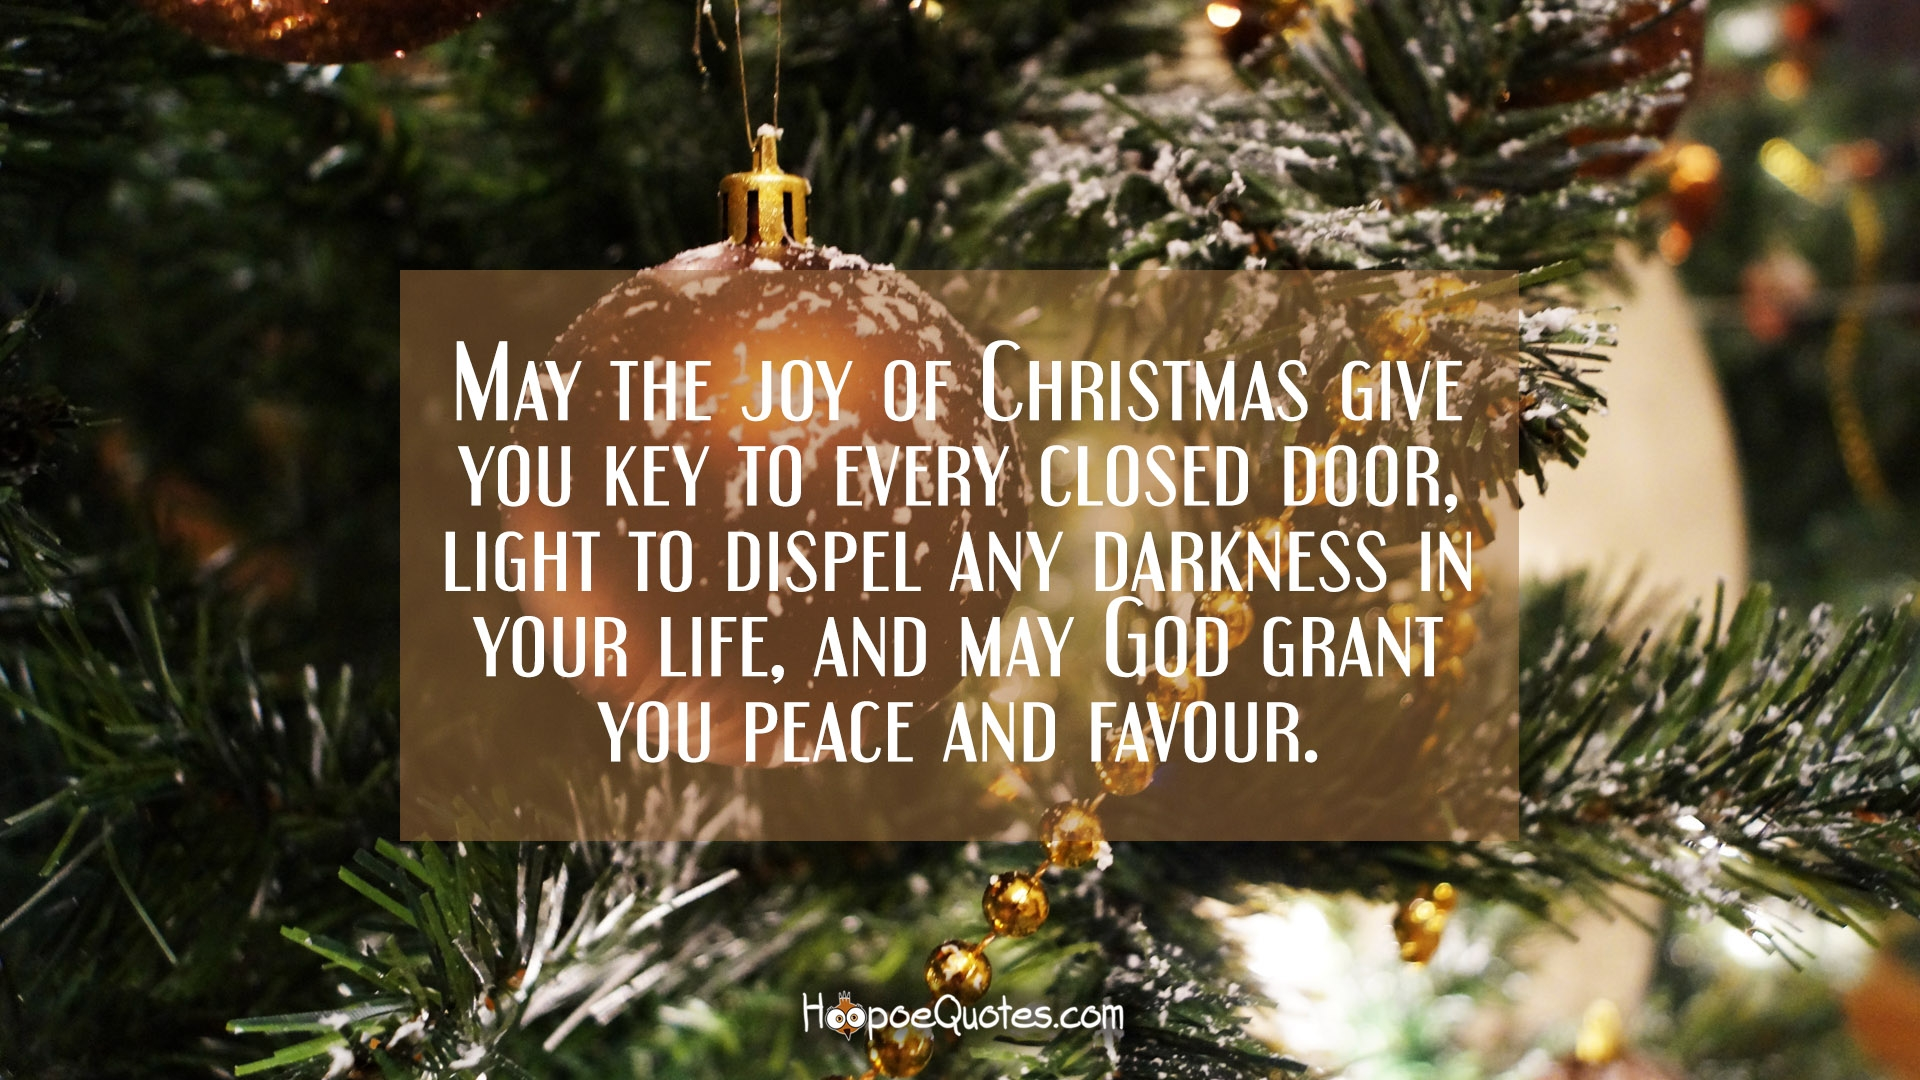 may the joy of christmas give you key to every closed door light to dispel any darkness in your life and may god grant you peace and favour